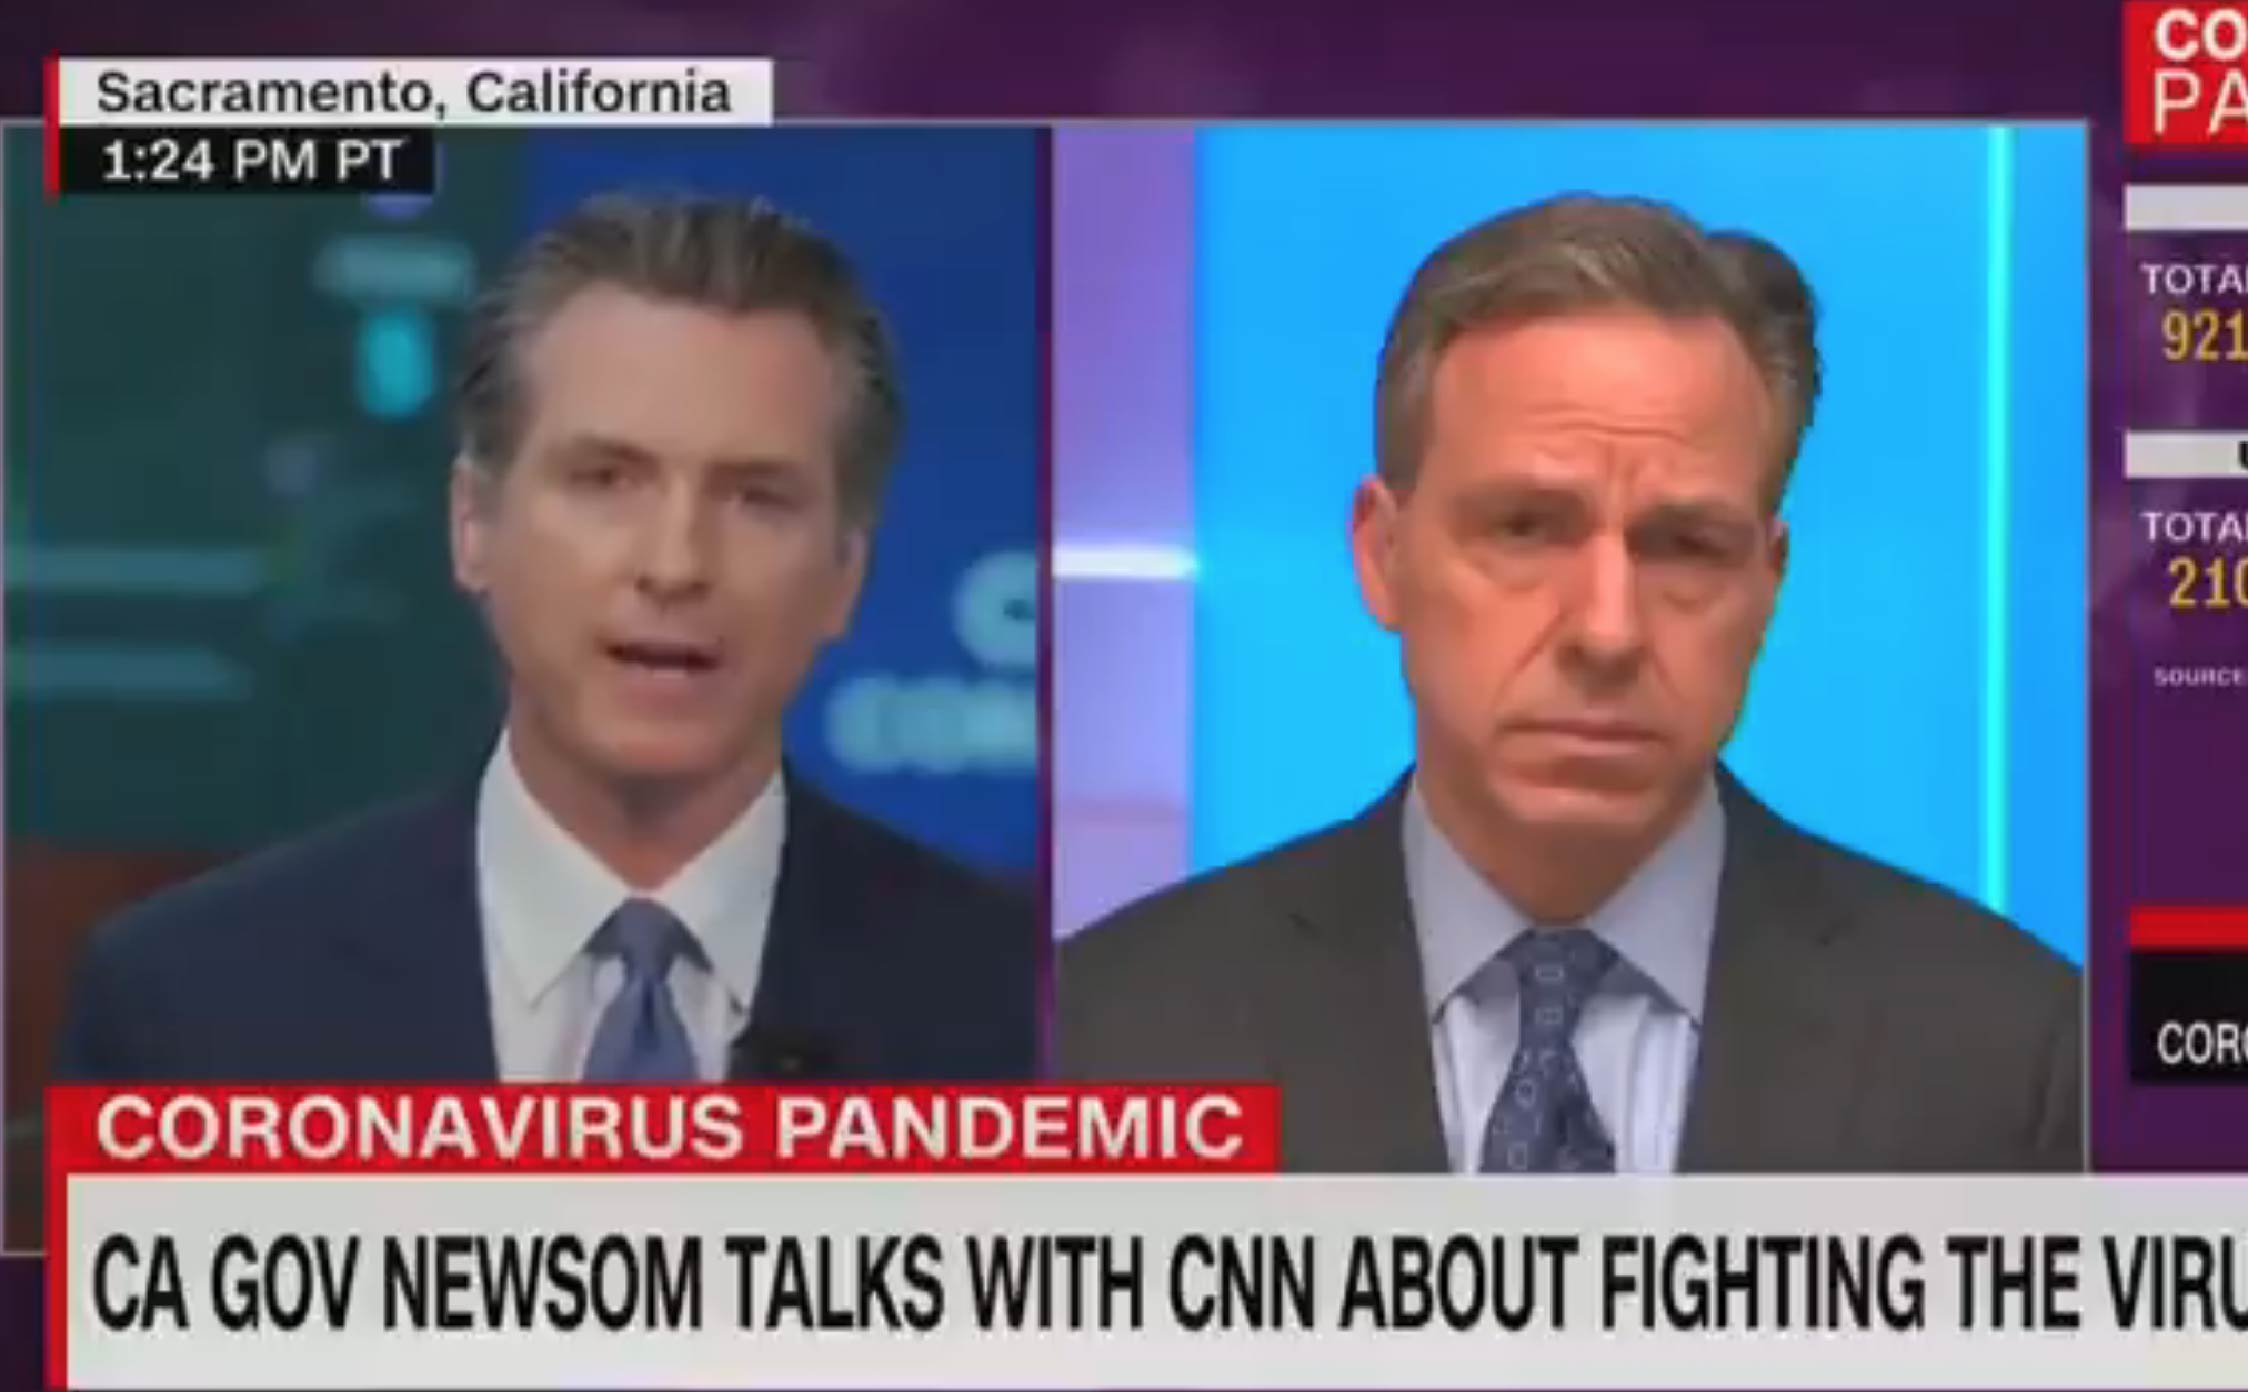 [VIDEO] Gavin Newsom Refuses to Trash Trump on CNN - 'I'd Be Lying to You to Say That He Hasn't Been Responsive to Our Needs' - WayneDupree.com